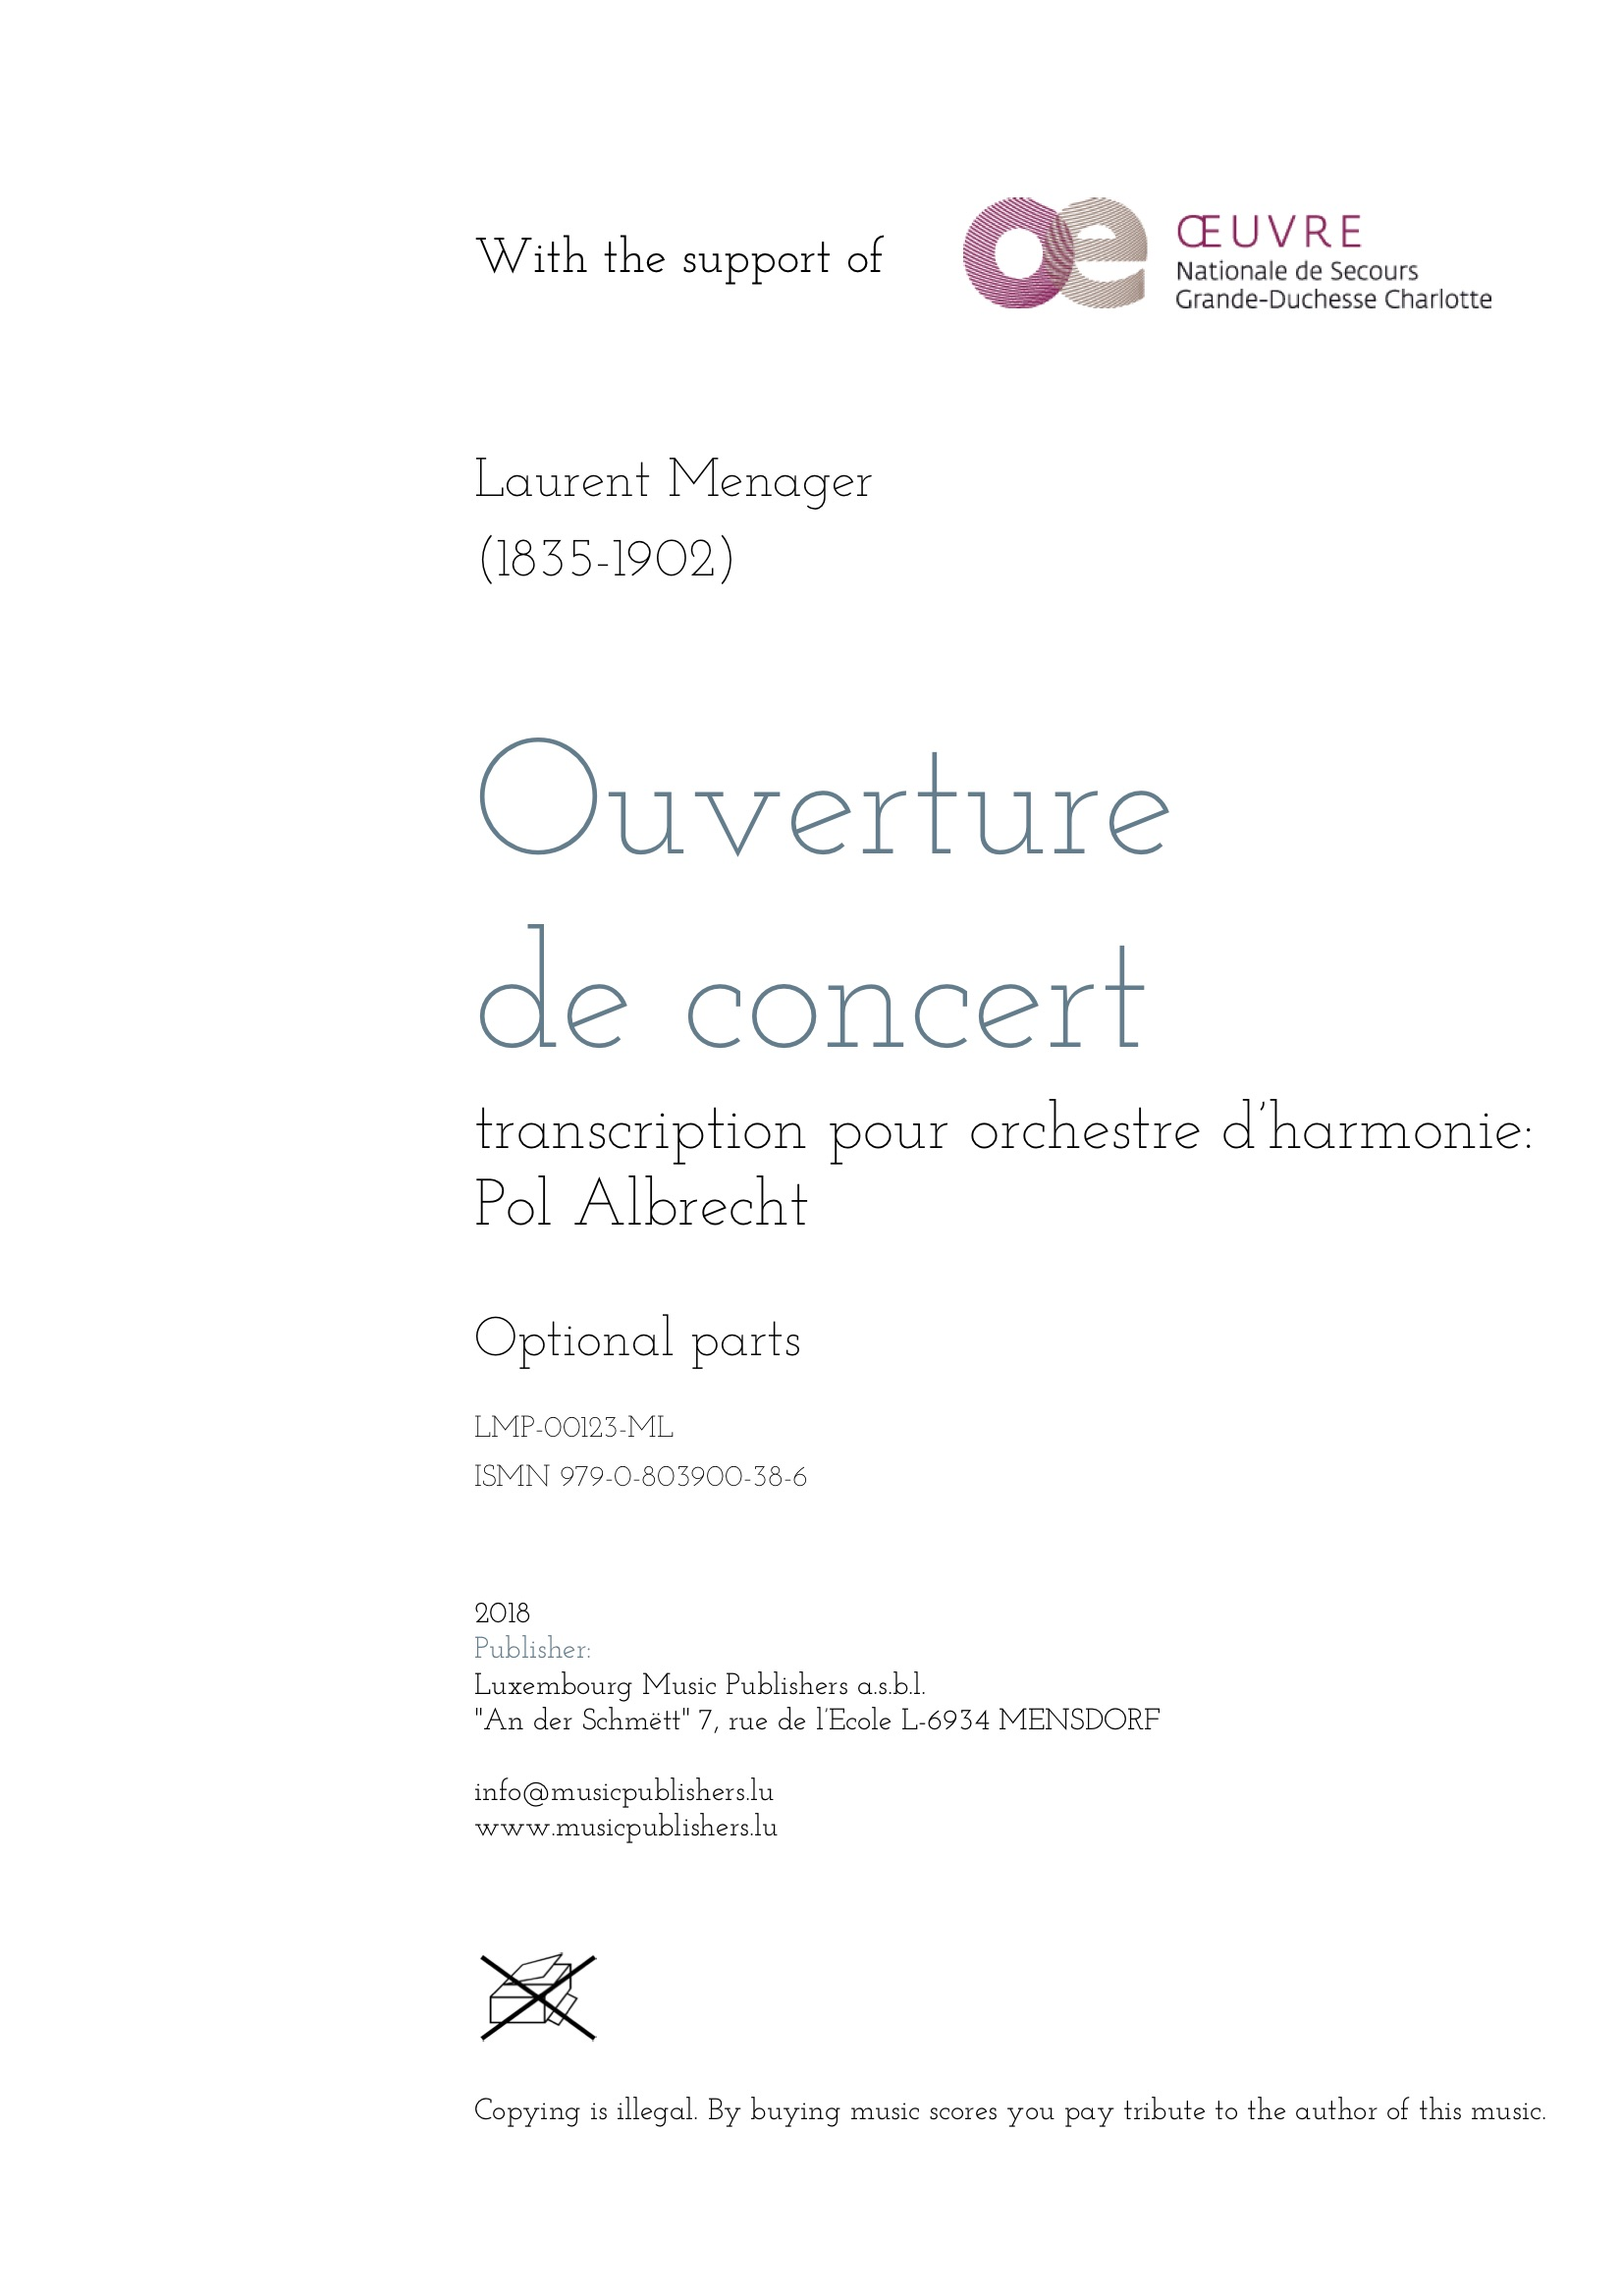 Ouverture de concert. Sheet Music by Laurent Menager, composer. Transcription by Pol Albrecht. Music for wind orchestra. Music for symphonic wind orchestra/band. Optional parts.